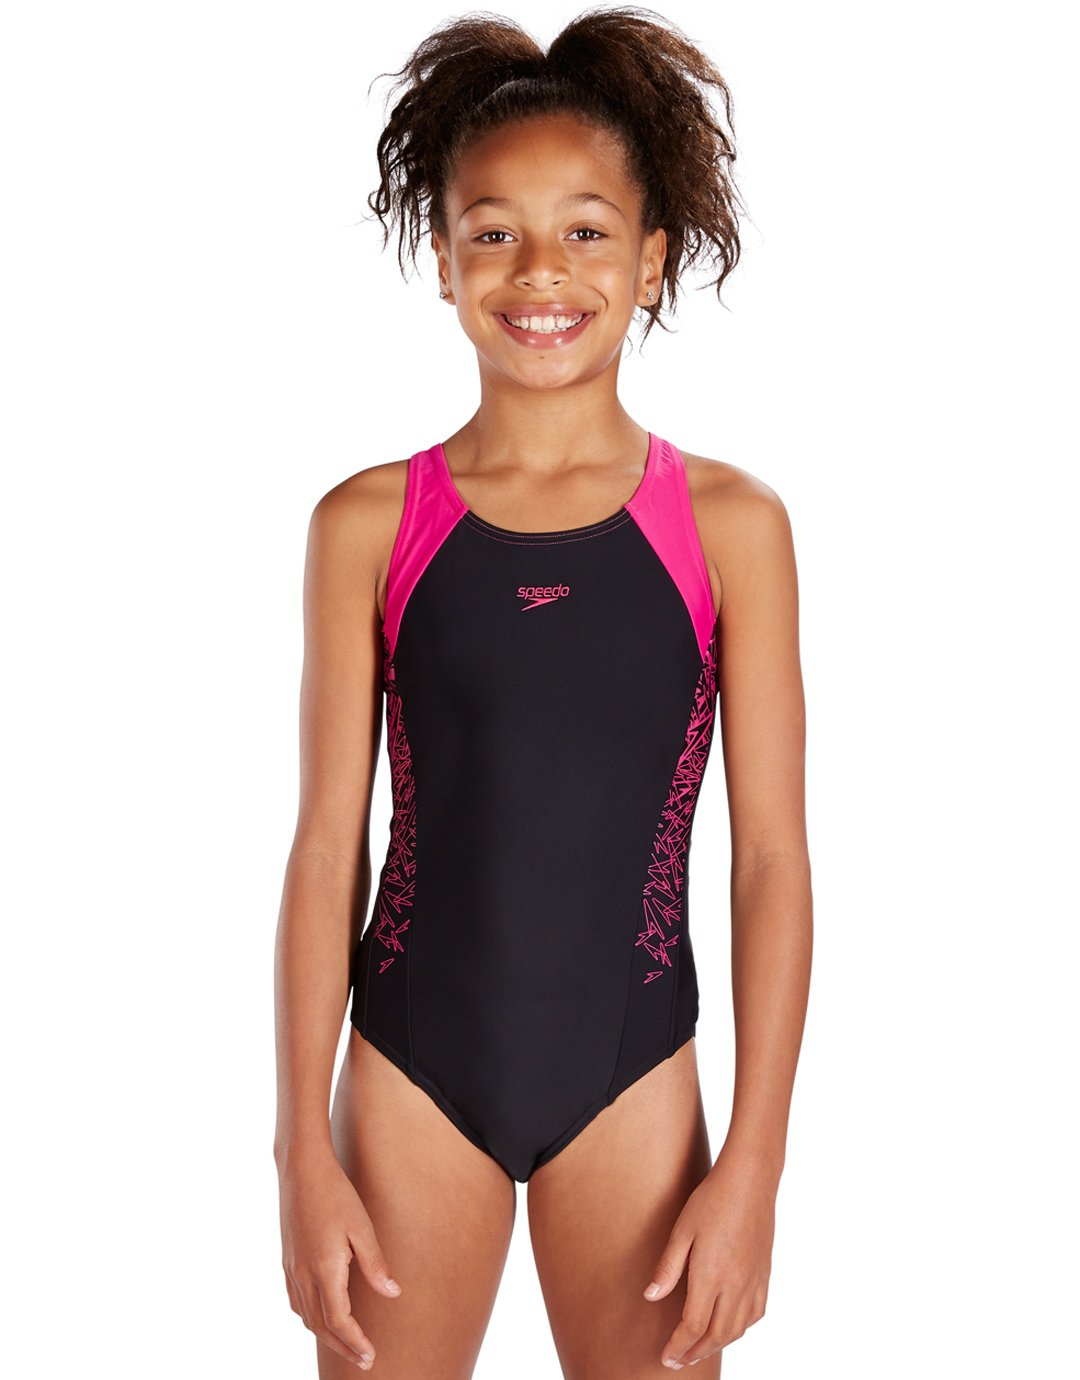 speedo girls endurance 10 boom splice muscleback - black and pink